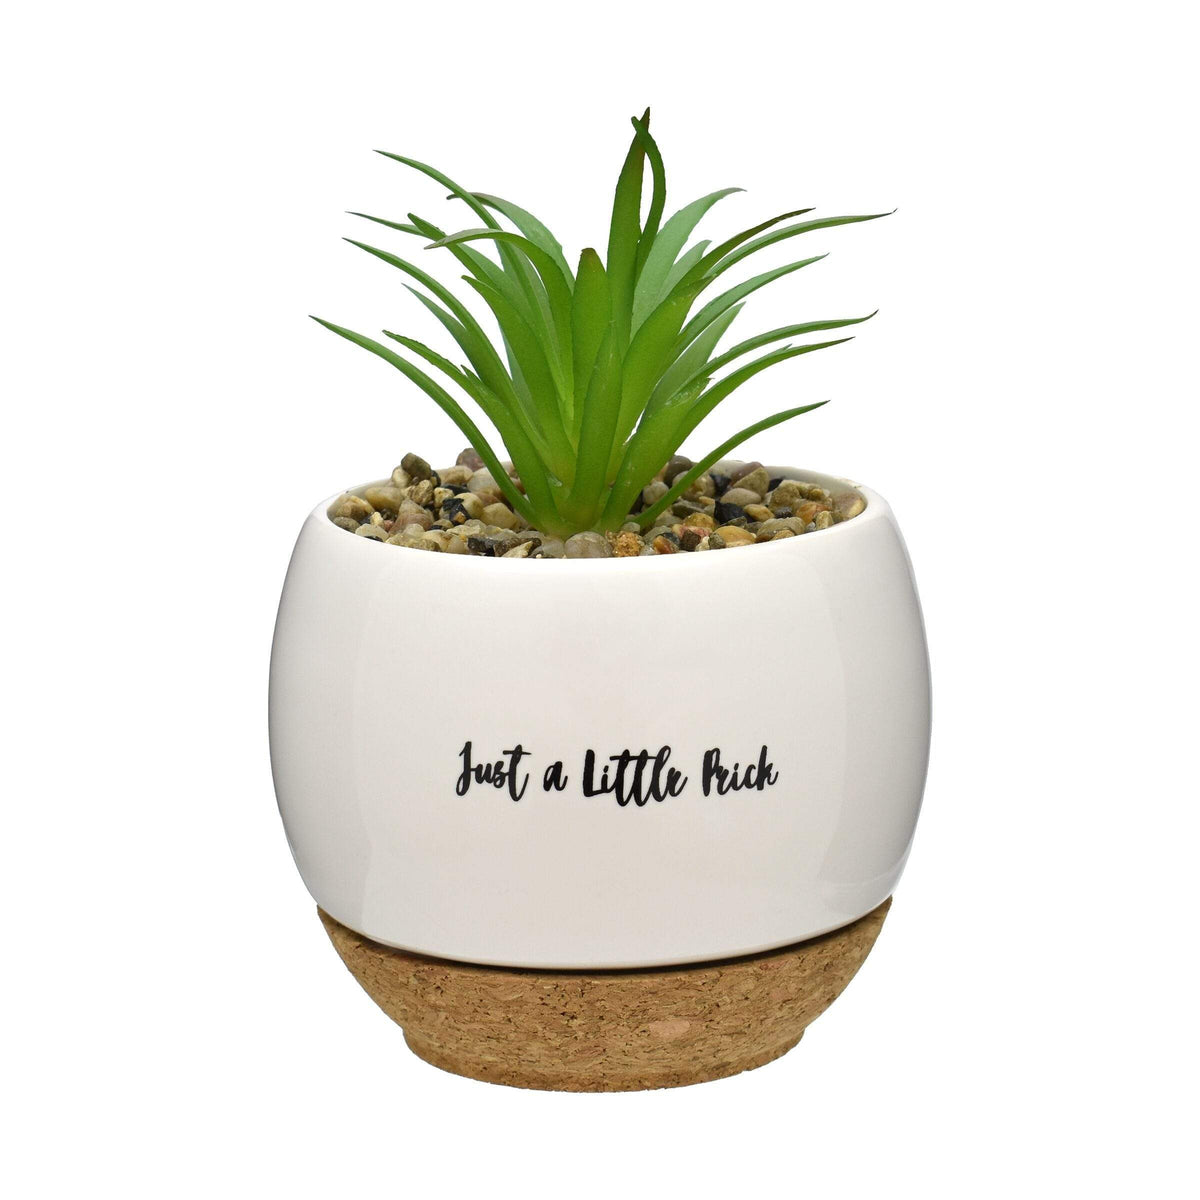 Pun Intended Mini Succulent Pot - Just A Little Prick